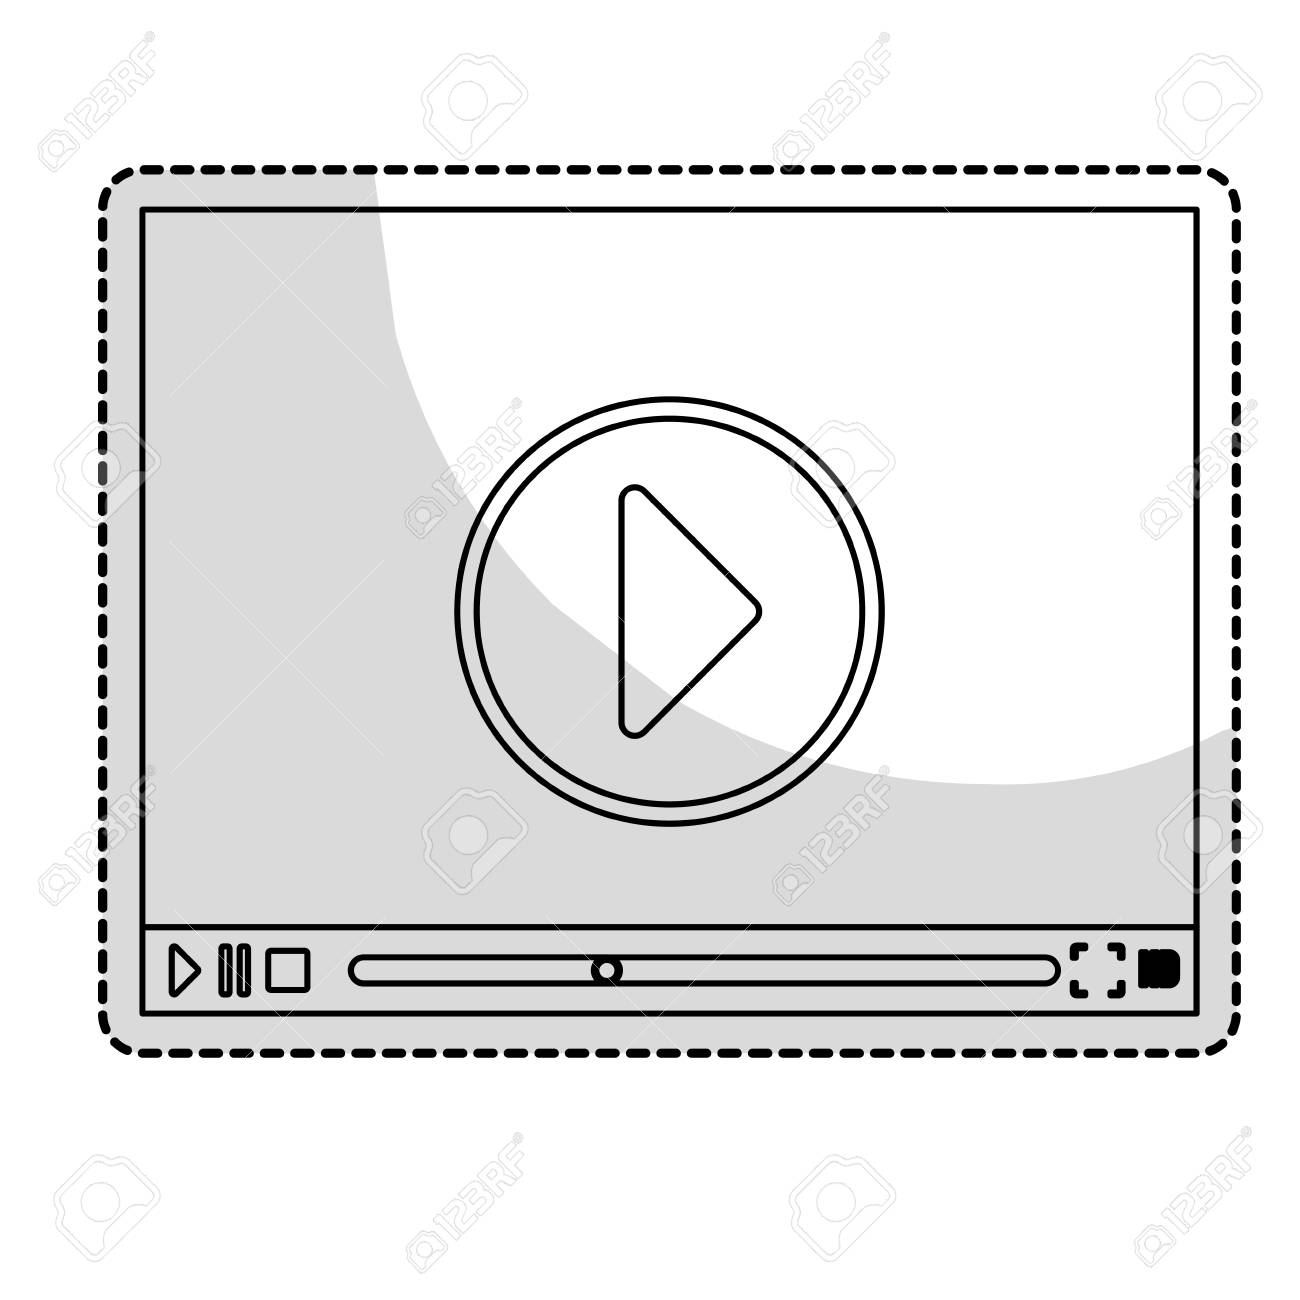 Play Symbol On Digital Platform Movie Or Video Related Icon Image